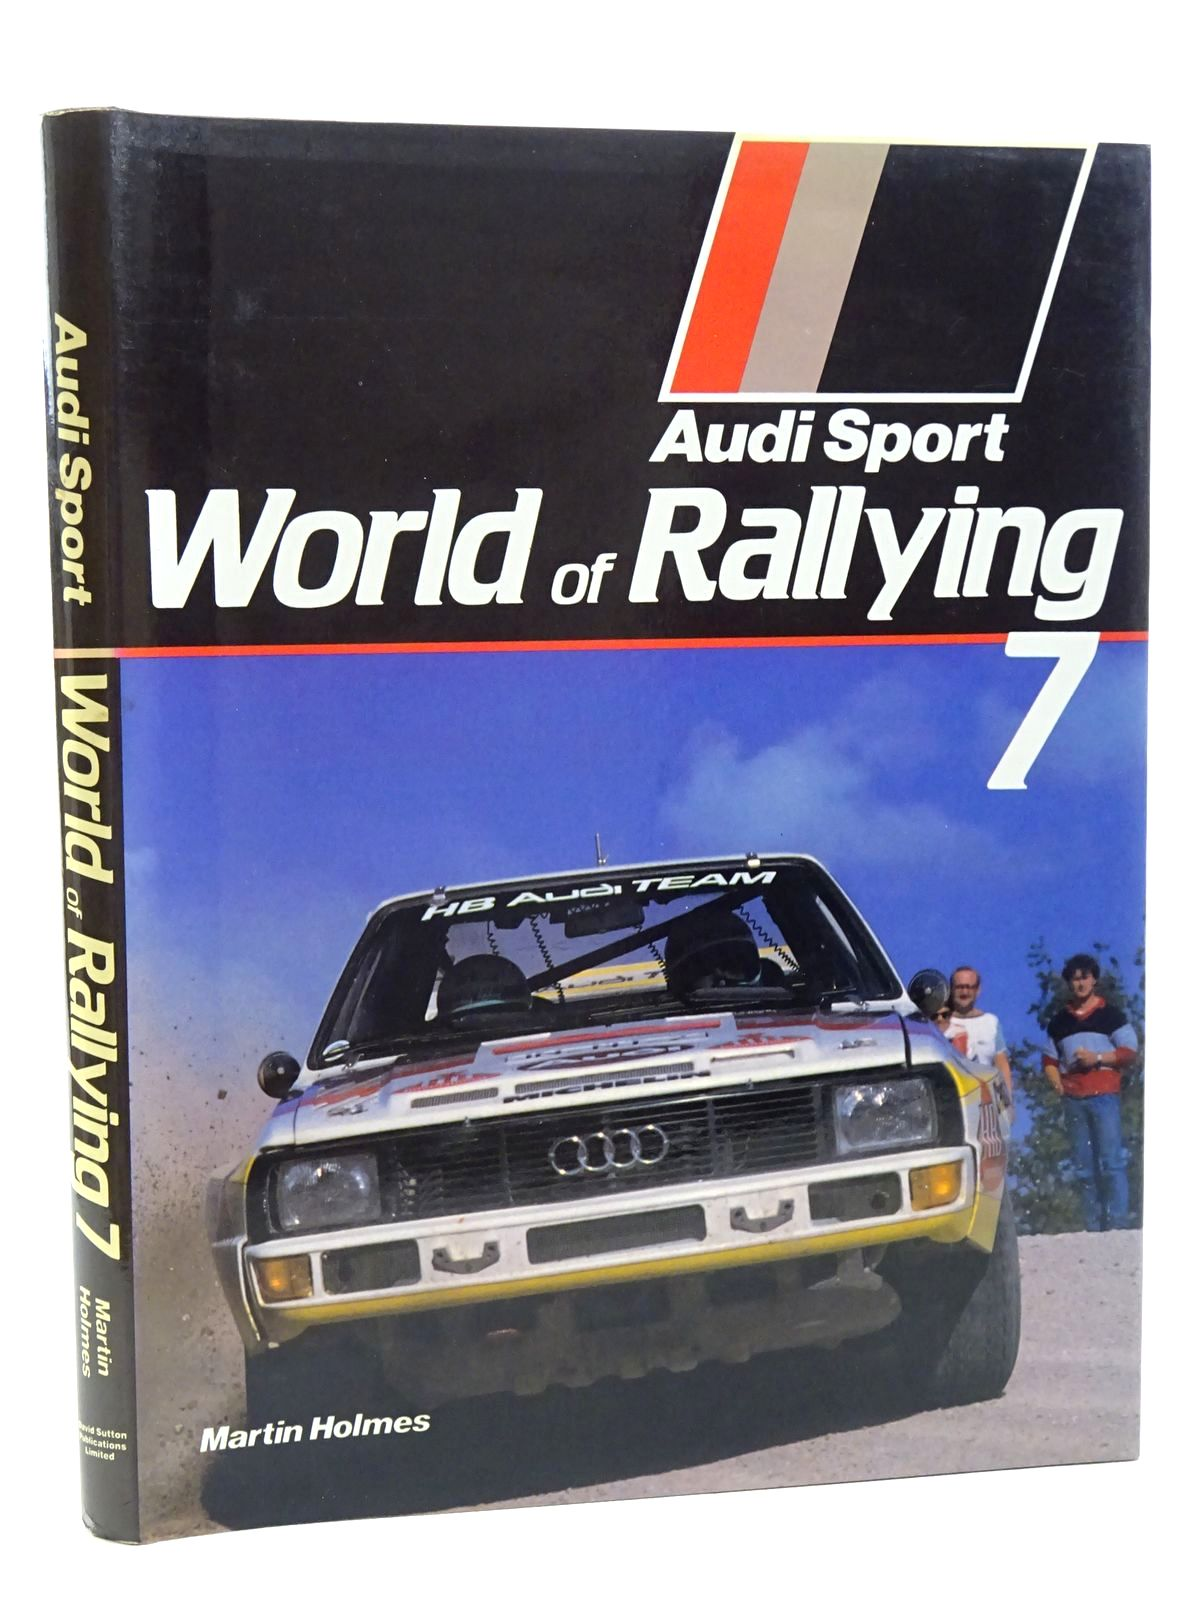 Photo of AUDI SPORT WORLD OF RALLYING 7 written by Holmes, Martin published by David Sutton (STOCK CODE: 1815965)  for sale by Stella & Rose's Books